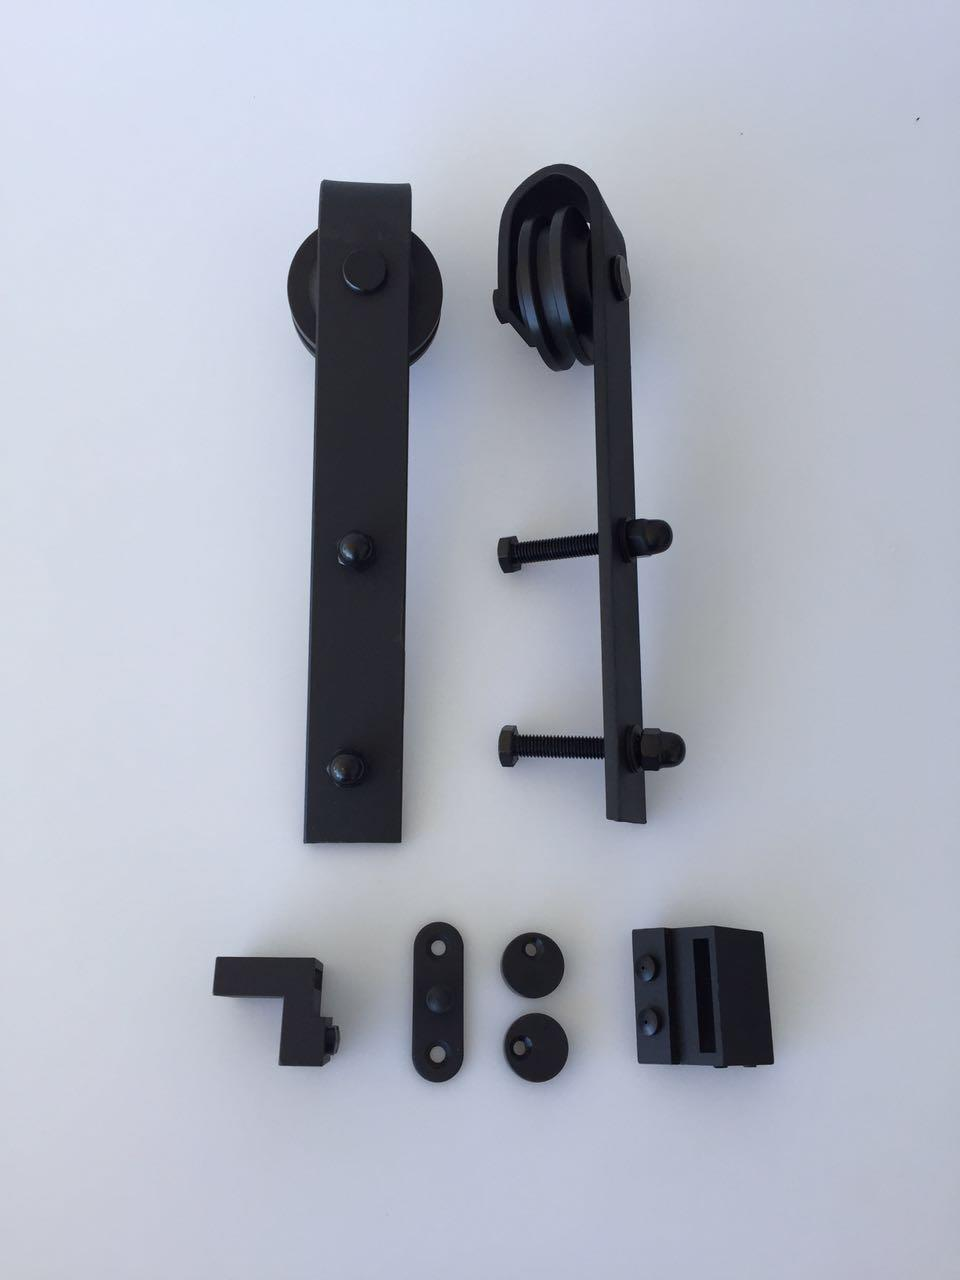 Sliding barn door rollers kits b02 ideal barn door australia for Sliding door rollers